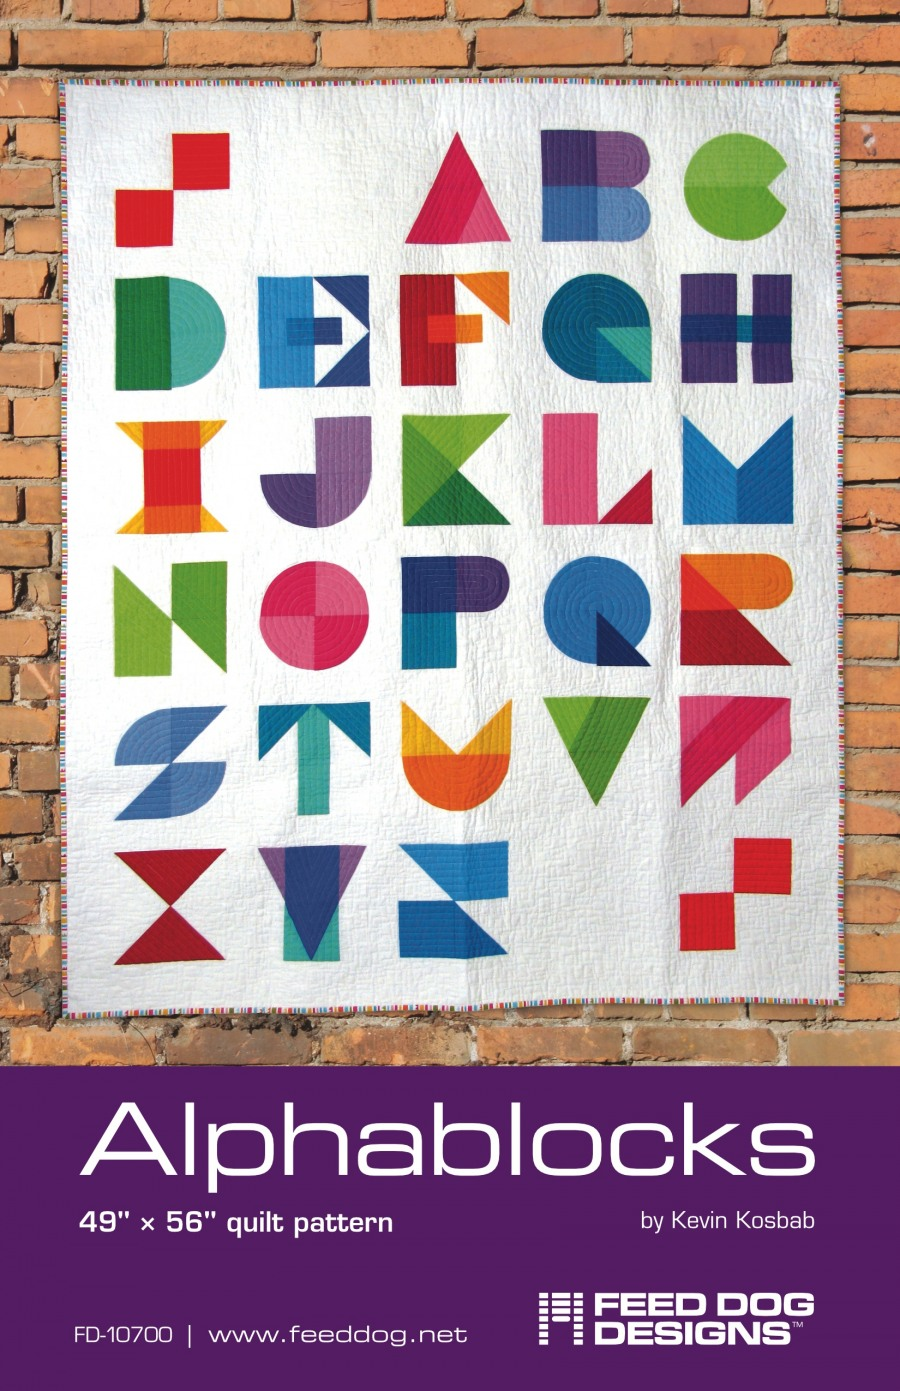 Alphablocks Quilt Feed Dog Designs